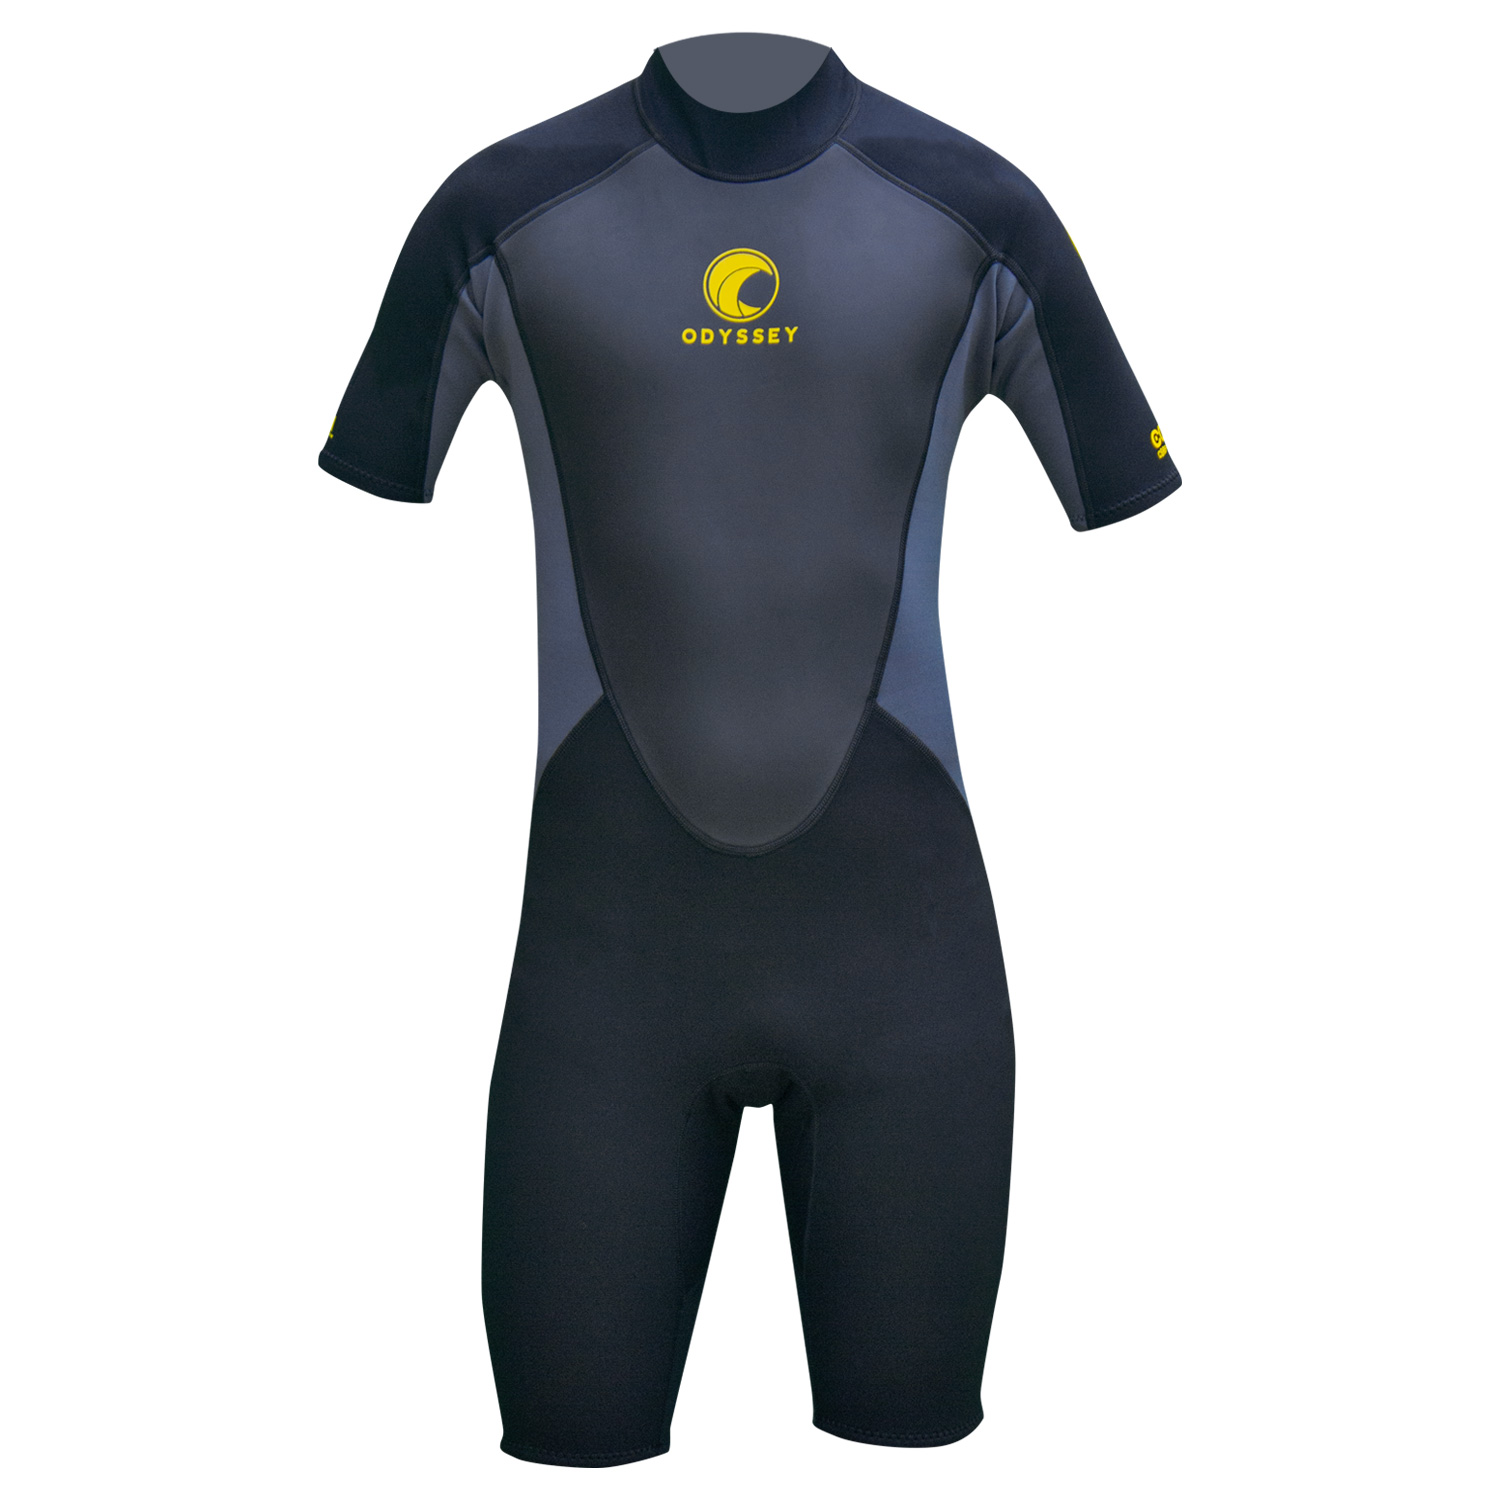 Odyssey-Core-3-2mm-Mens-Shorty-Wetsuit-Surf-Swim-Kayak-Shortie-Wet-Suit-S-XXL thumbnail 27